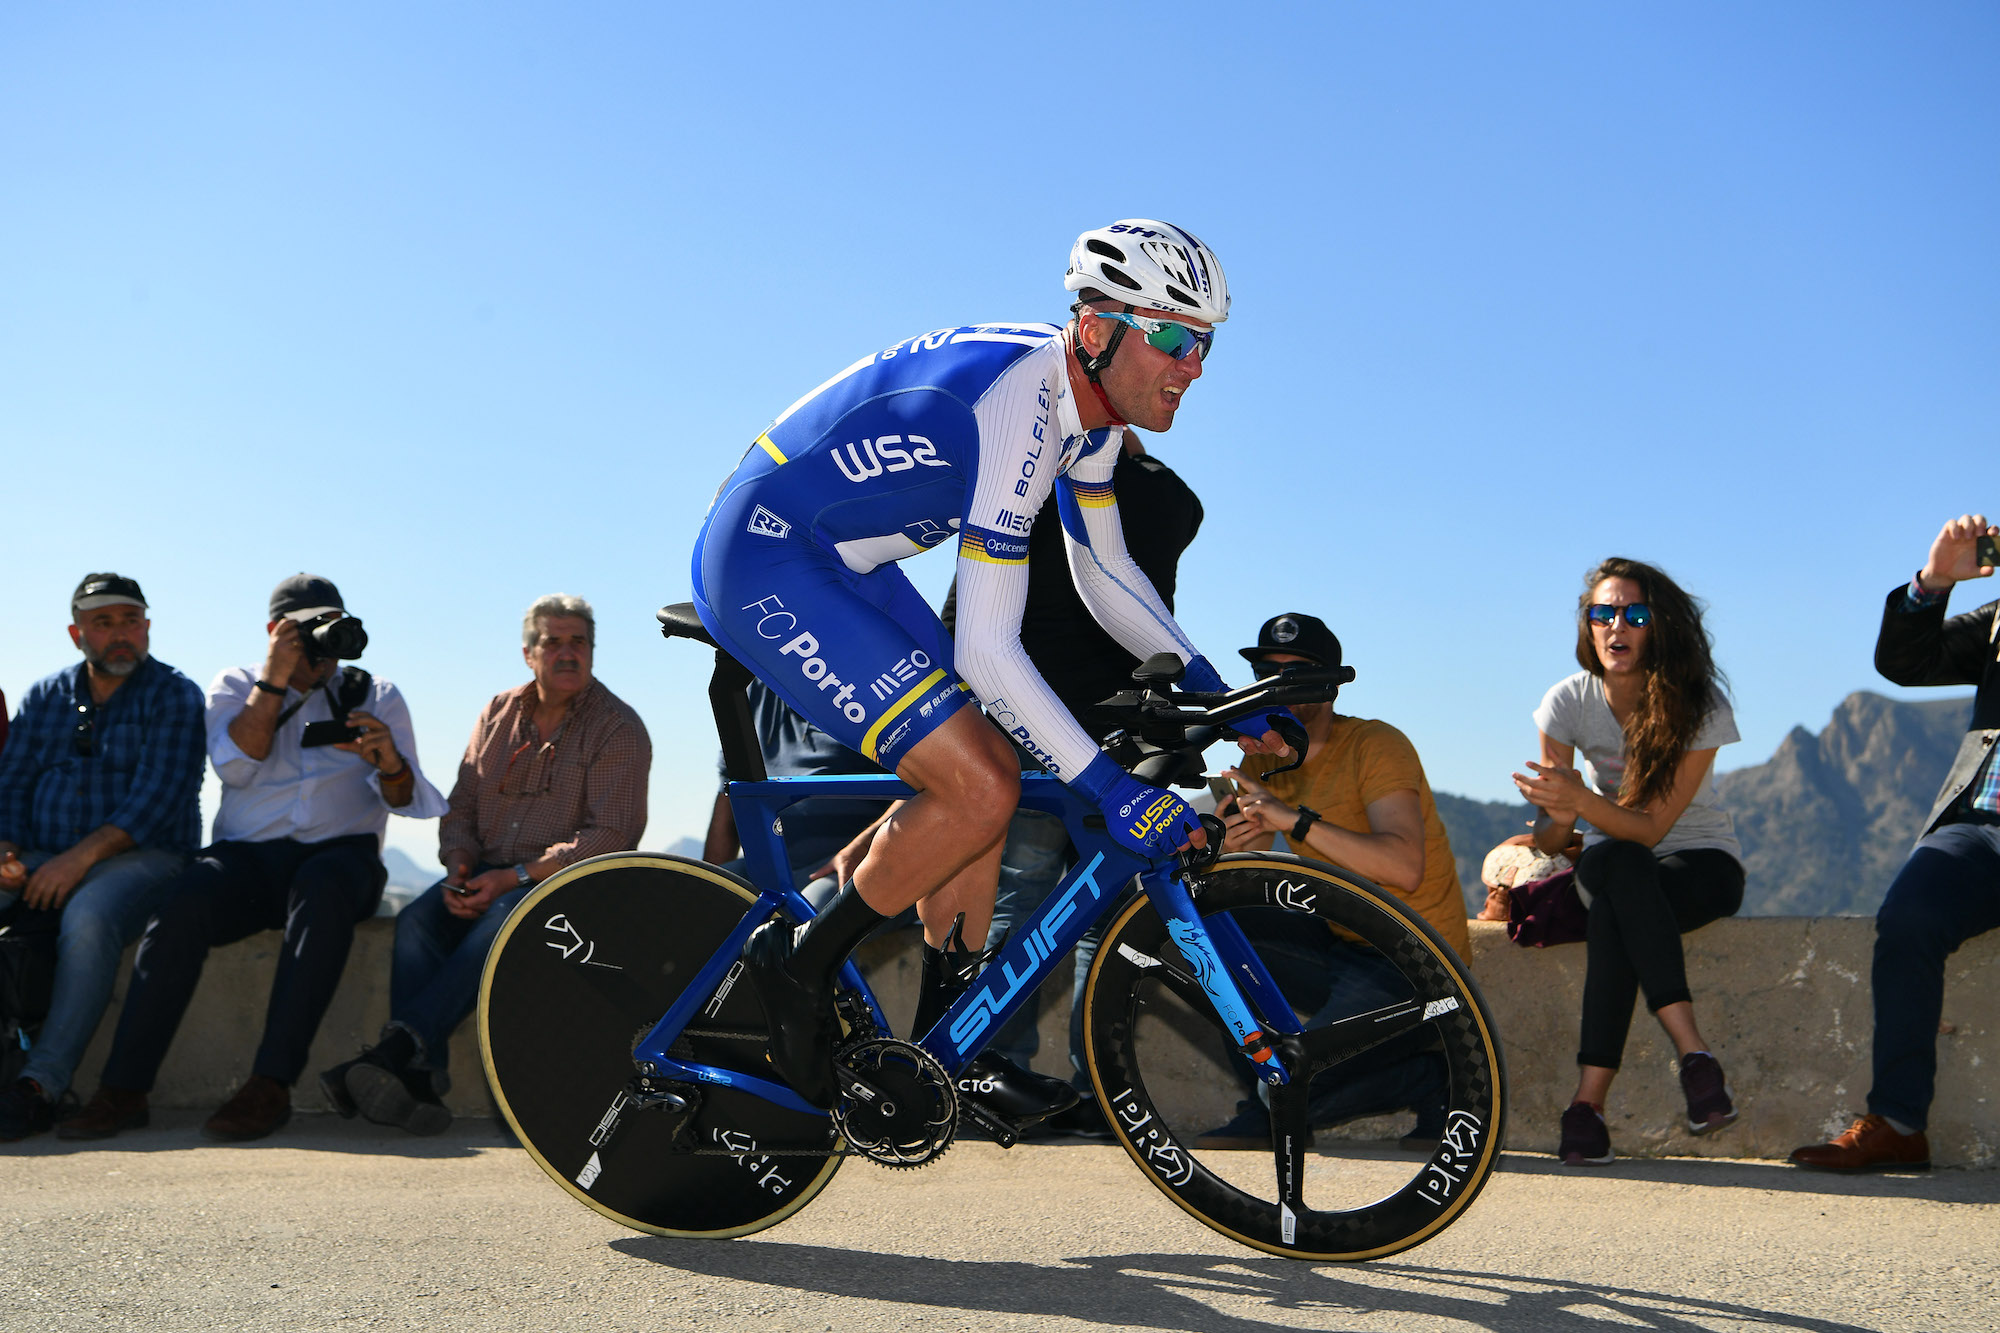 Raúl Alarcón provisionally suspended by UCI over suspected doping violation